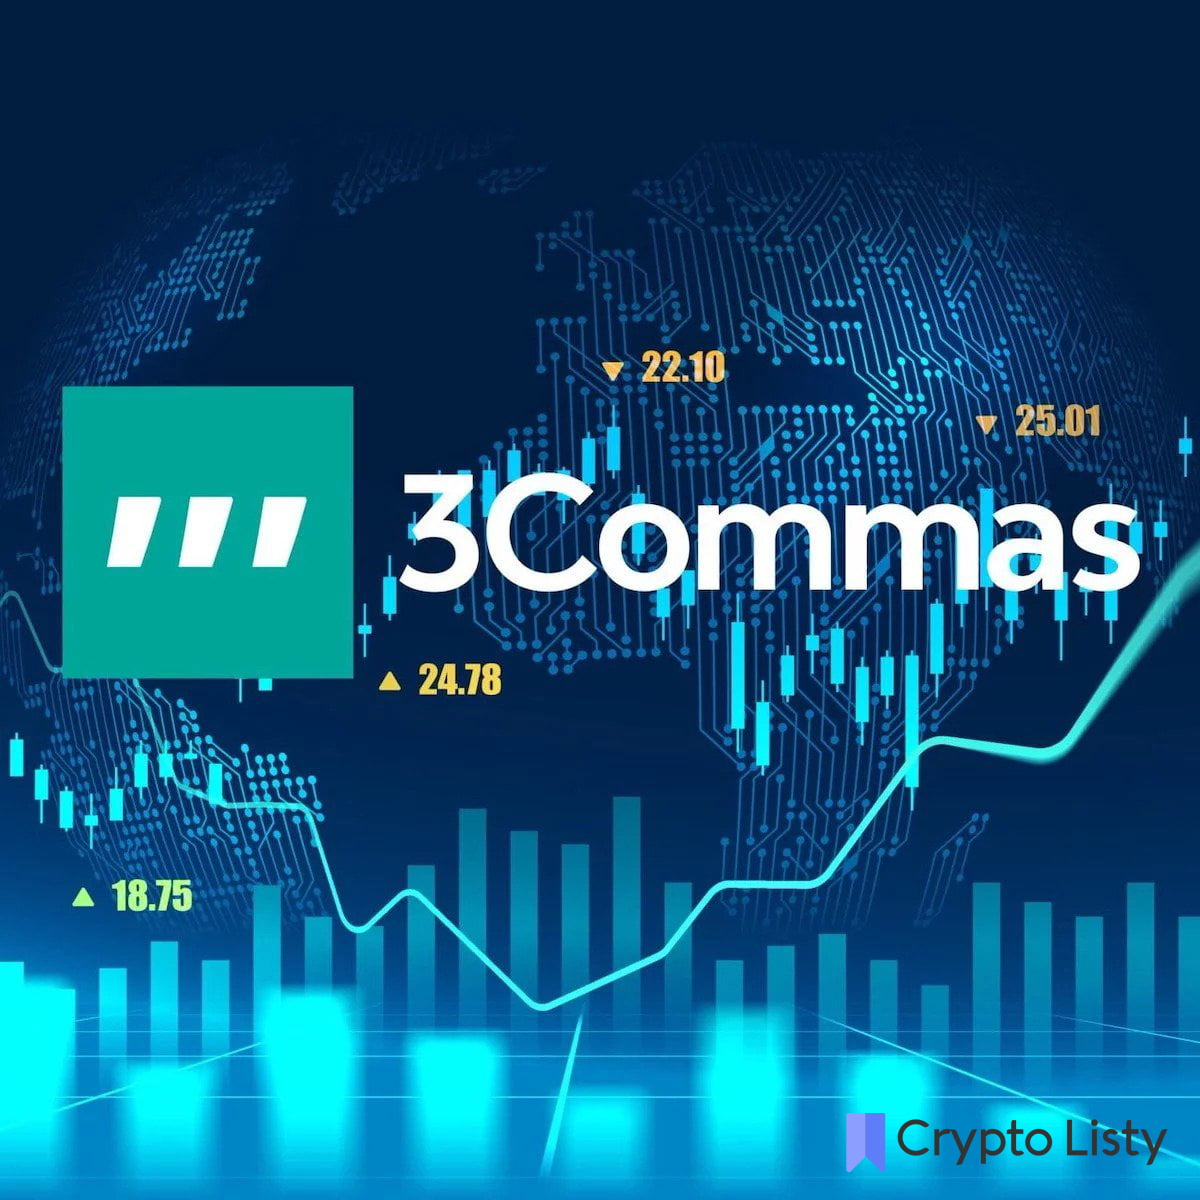 Trading chart with 3Commas logo on it